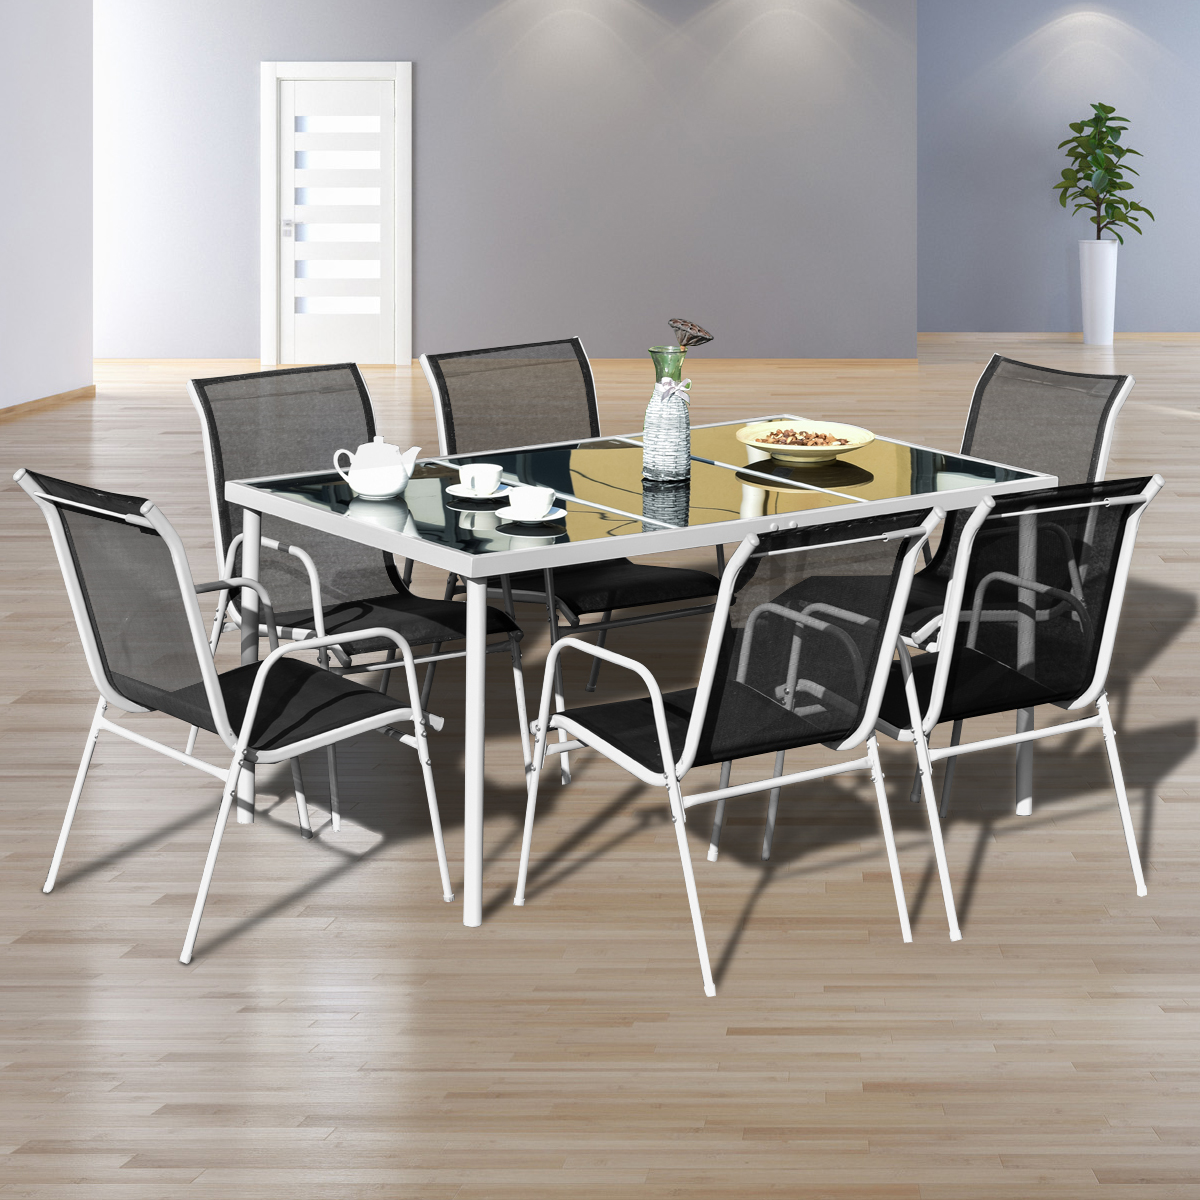 Gymax 7PC Patio Table Chairs Furniture Set Outdoor Garden Dining Set